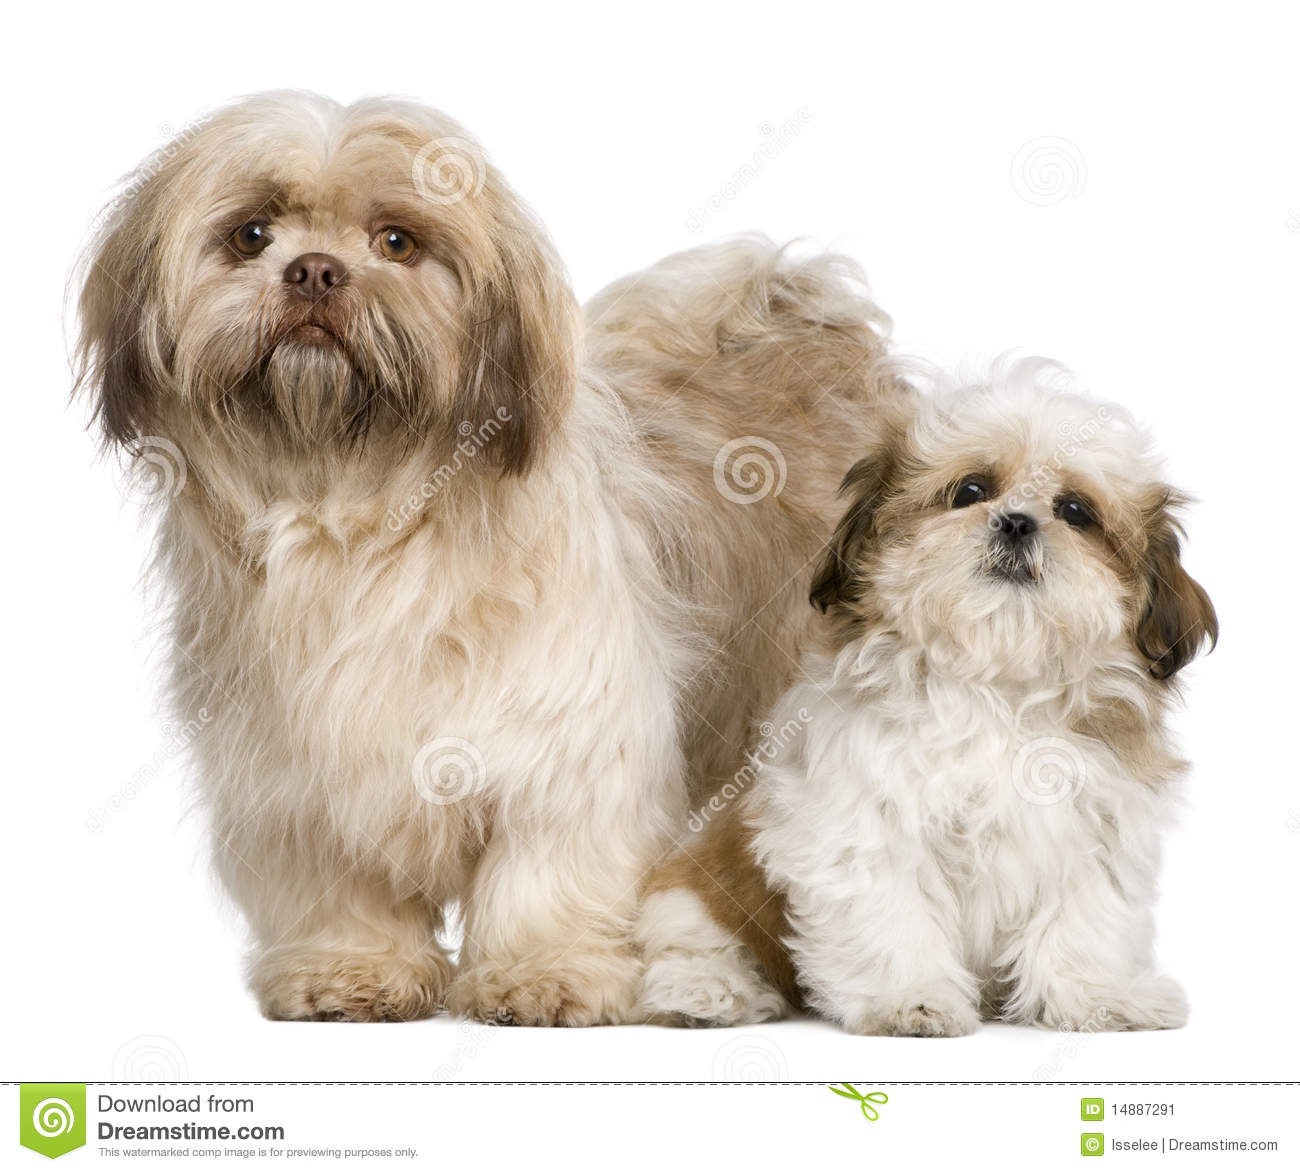 Mother Shih Tzu and her puppy